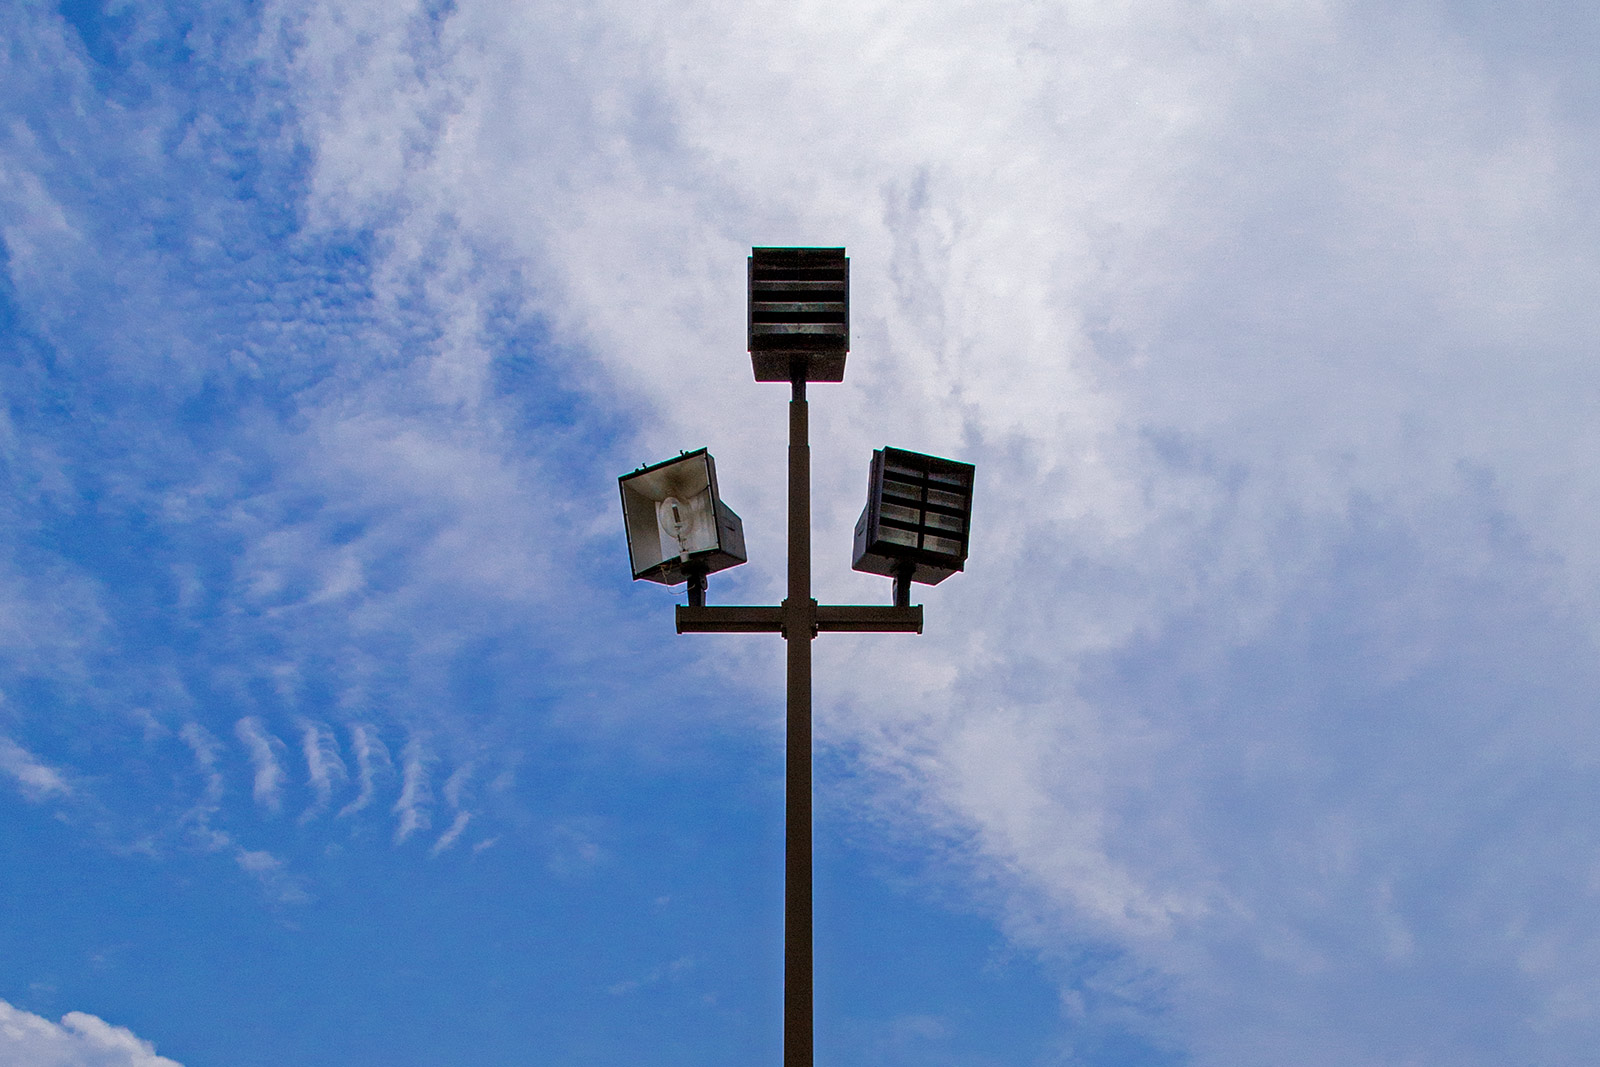 20140629. Parking lot lamp on a partly cloudy sky. Minimal Aesthetic # 35. Lamp # 3.